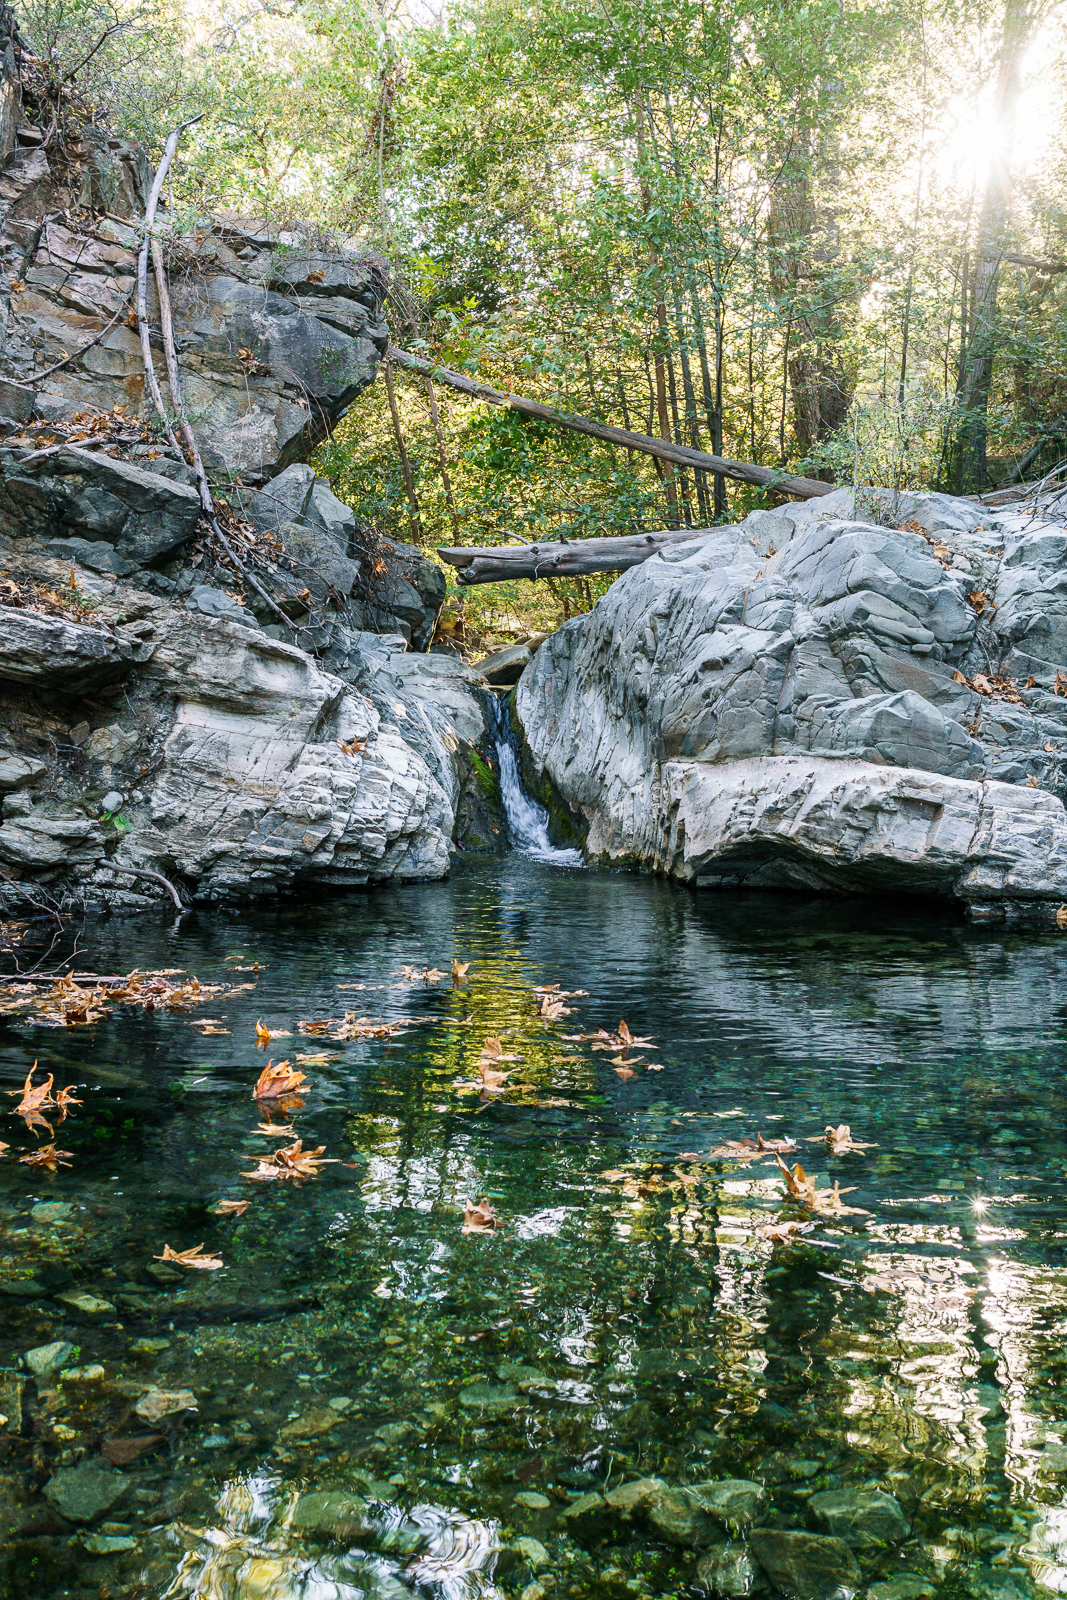 Pool in Alder Canyon. October 2016.